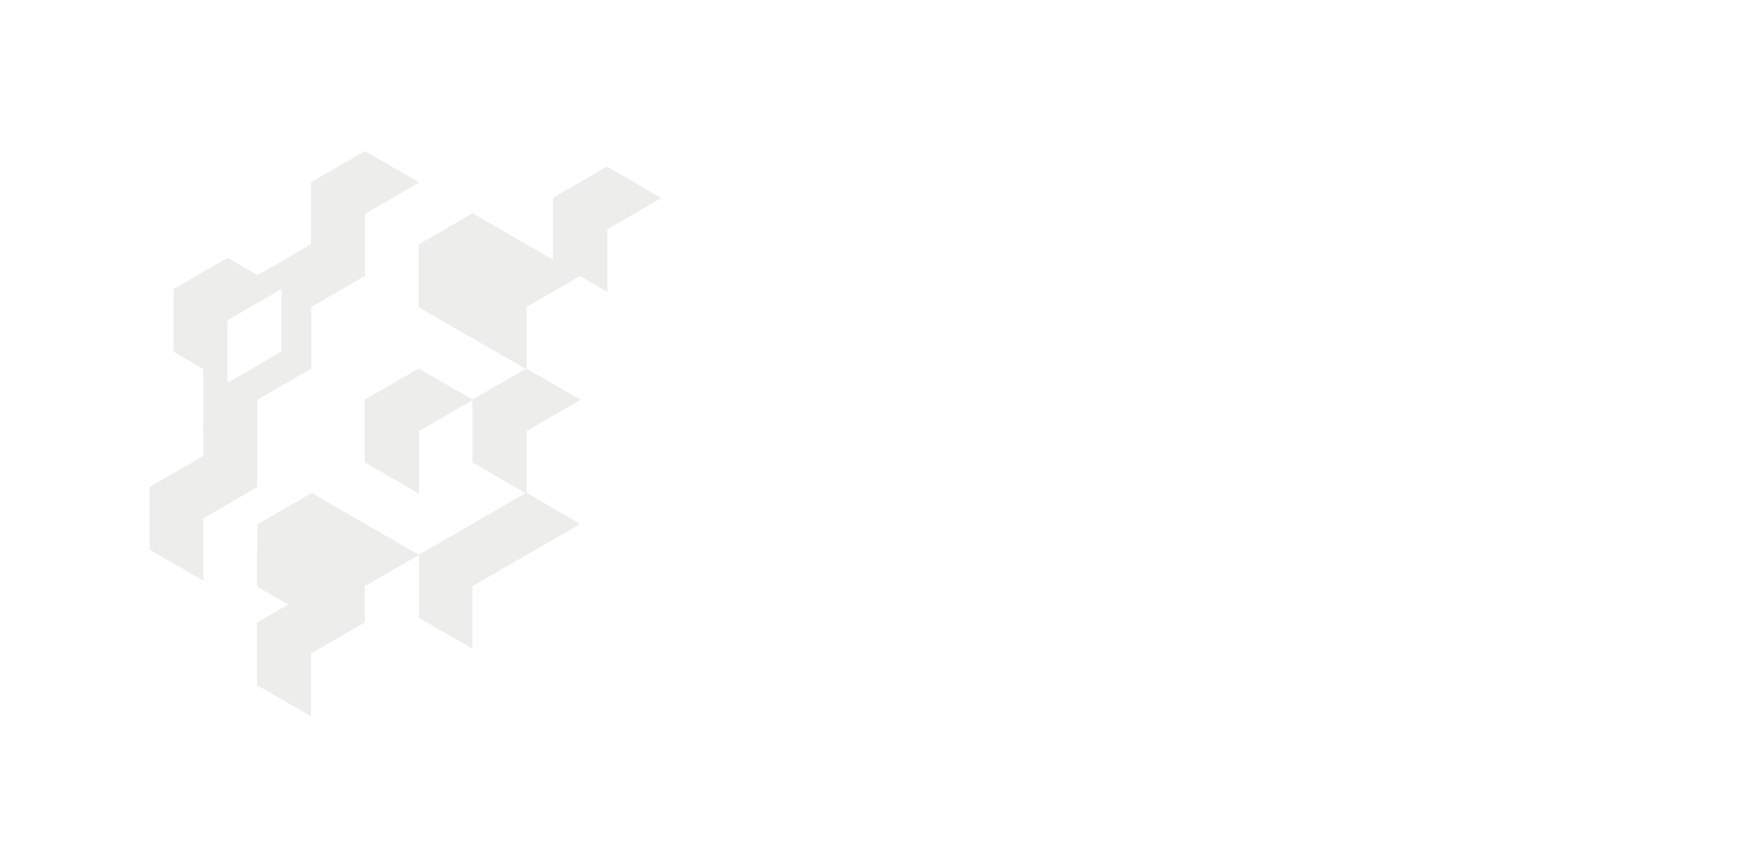 Construct Digital Logo (RGB)_Negative_Full_Transparent